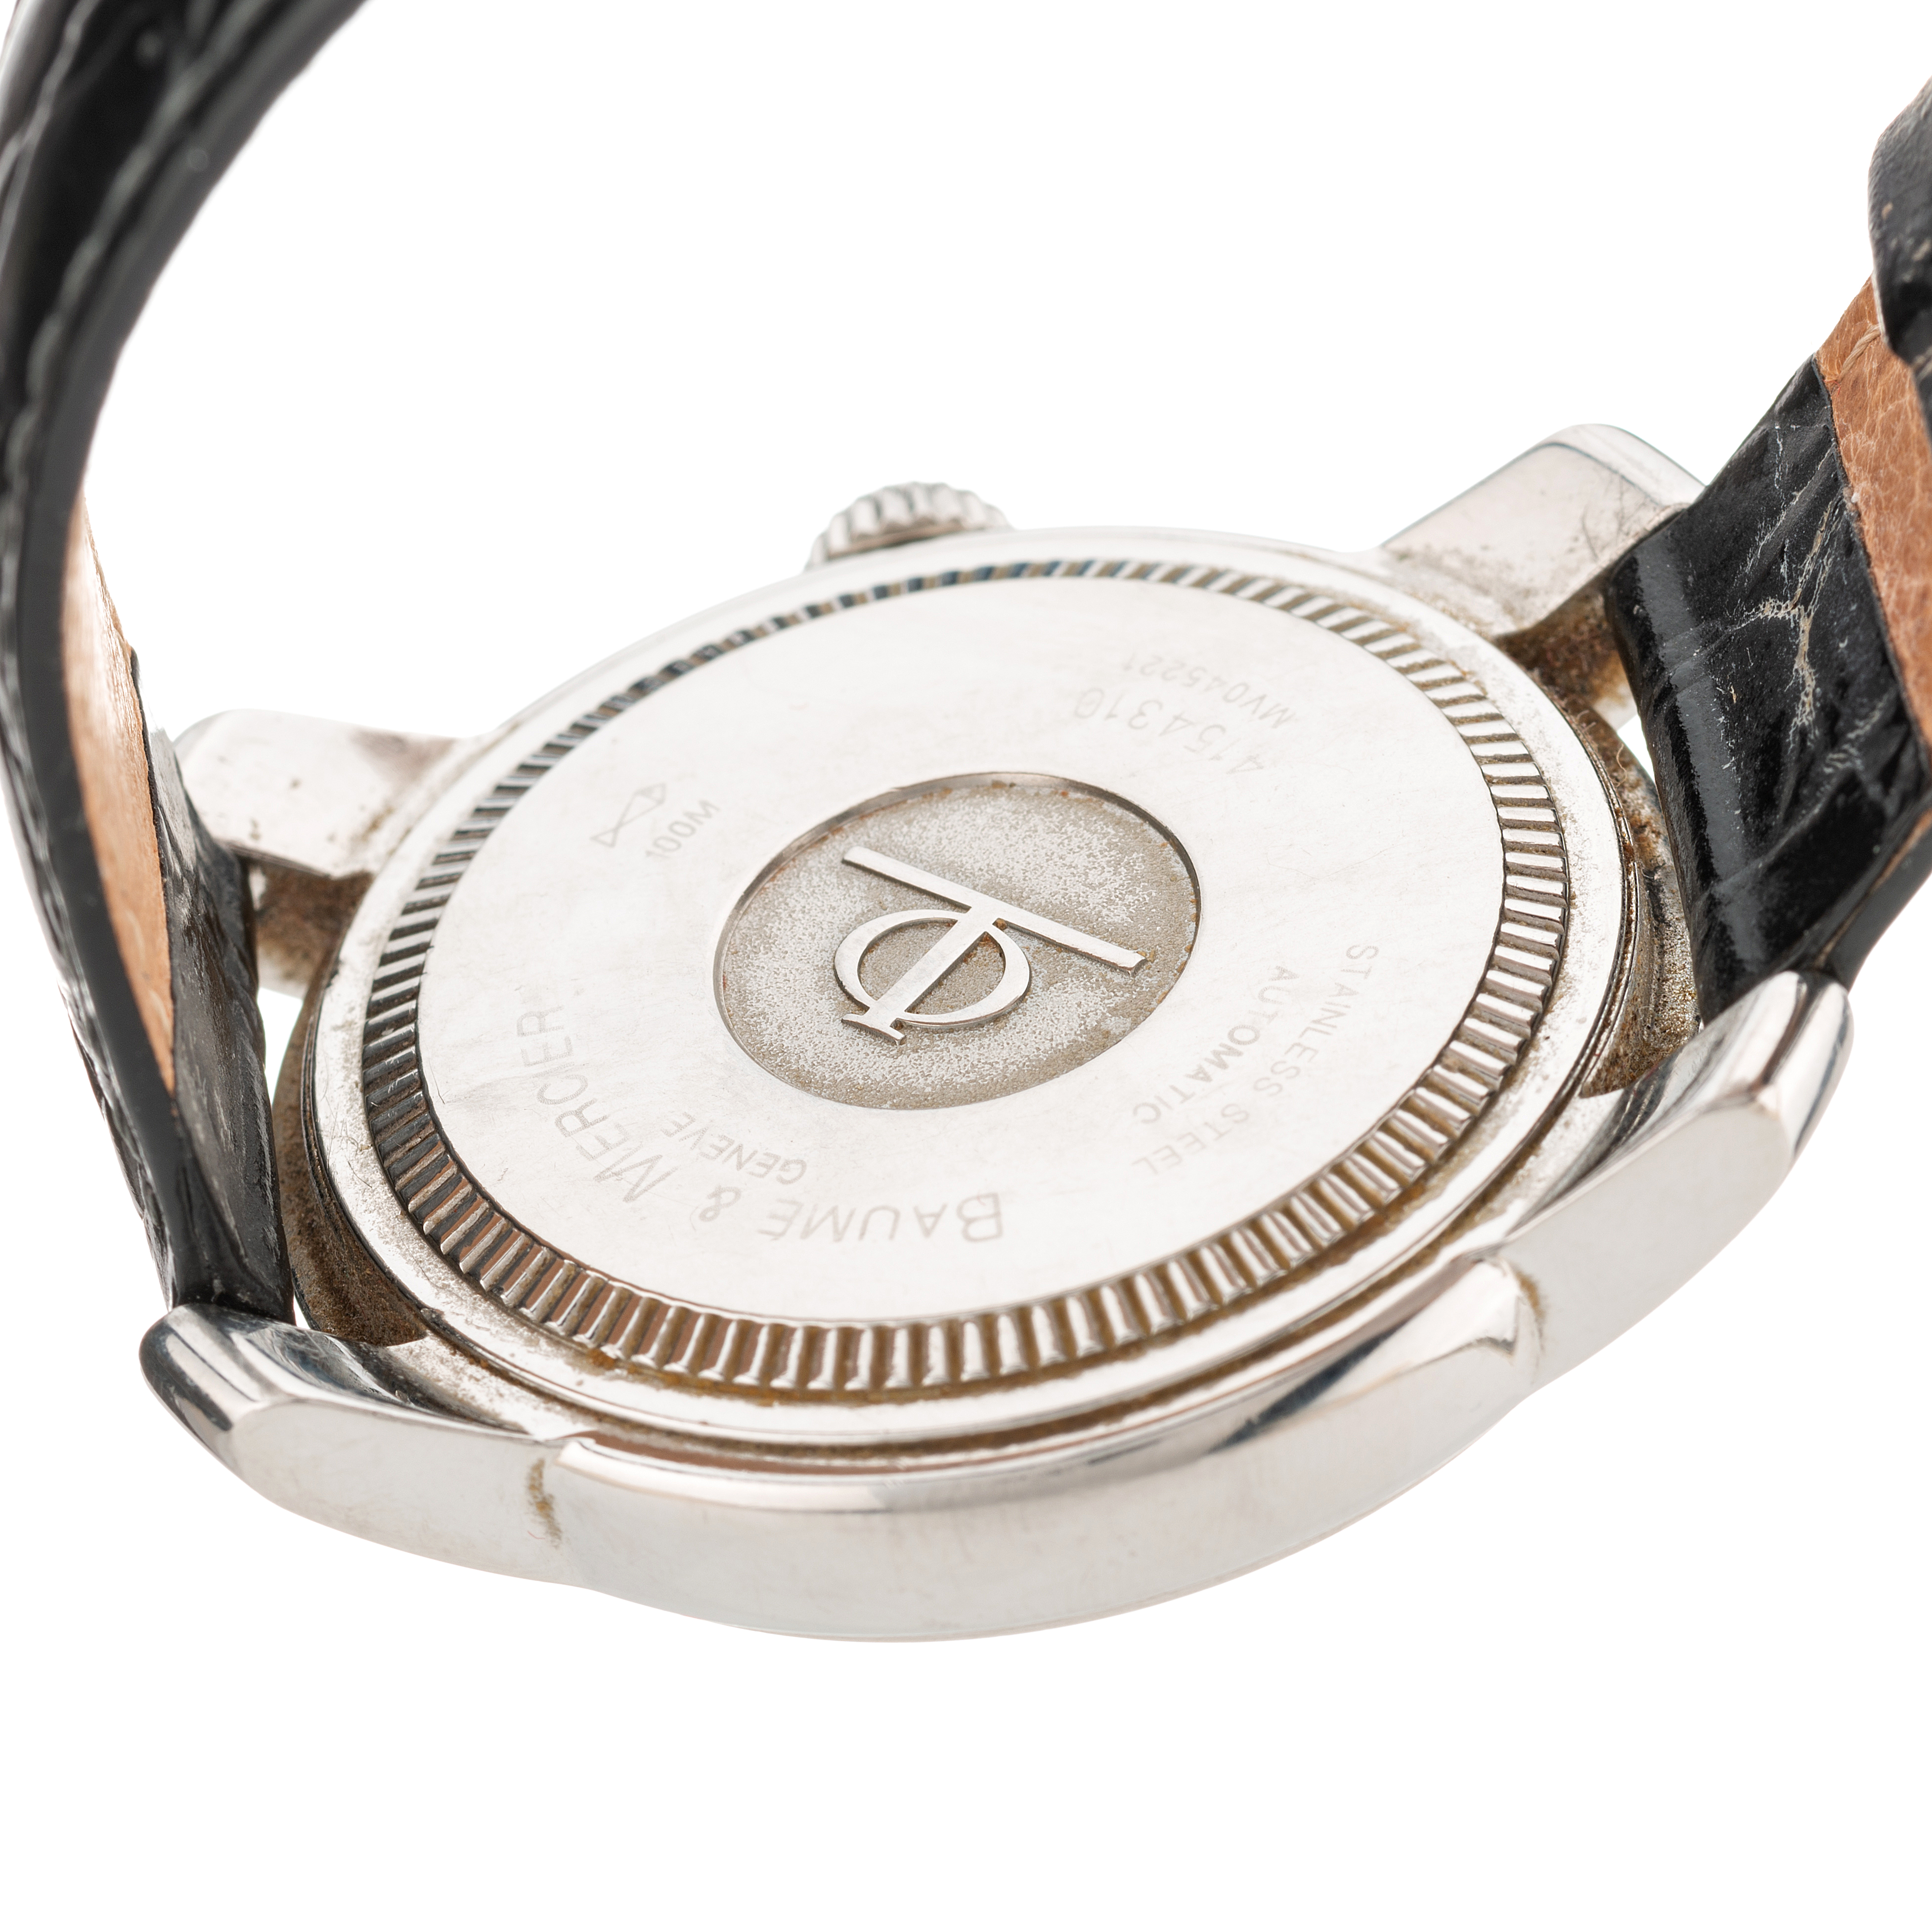 Baume & Mercier, a stainless steel Capeland automatic wrist watch - Image 2 of 3